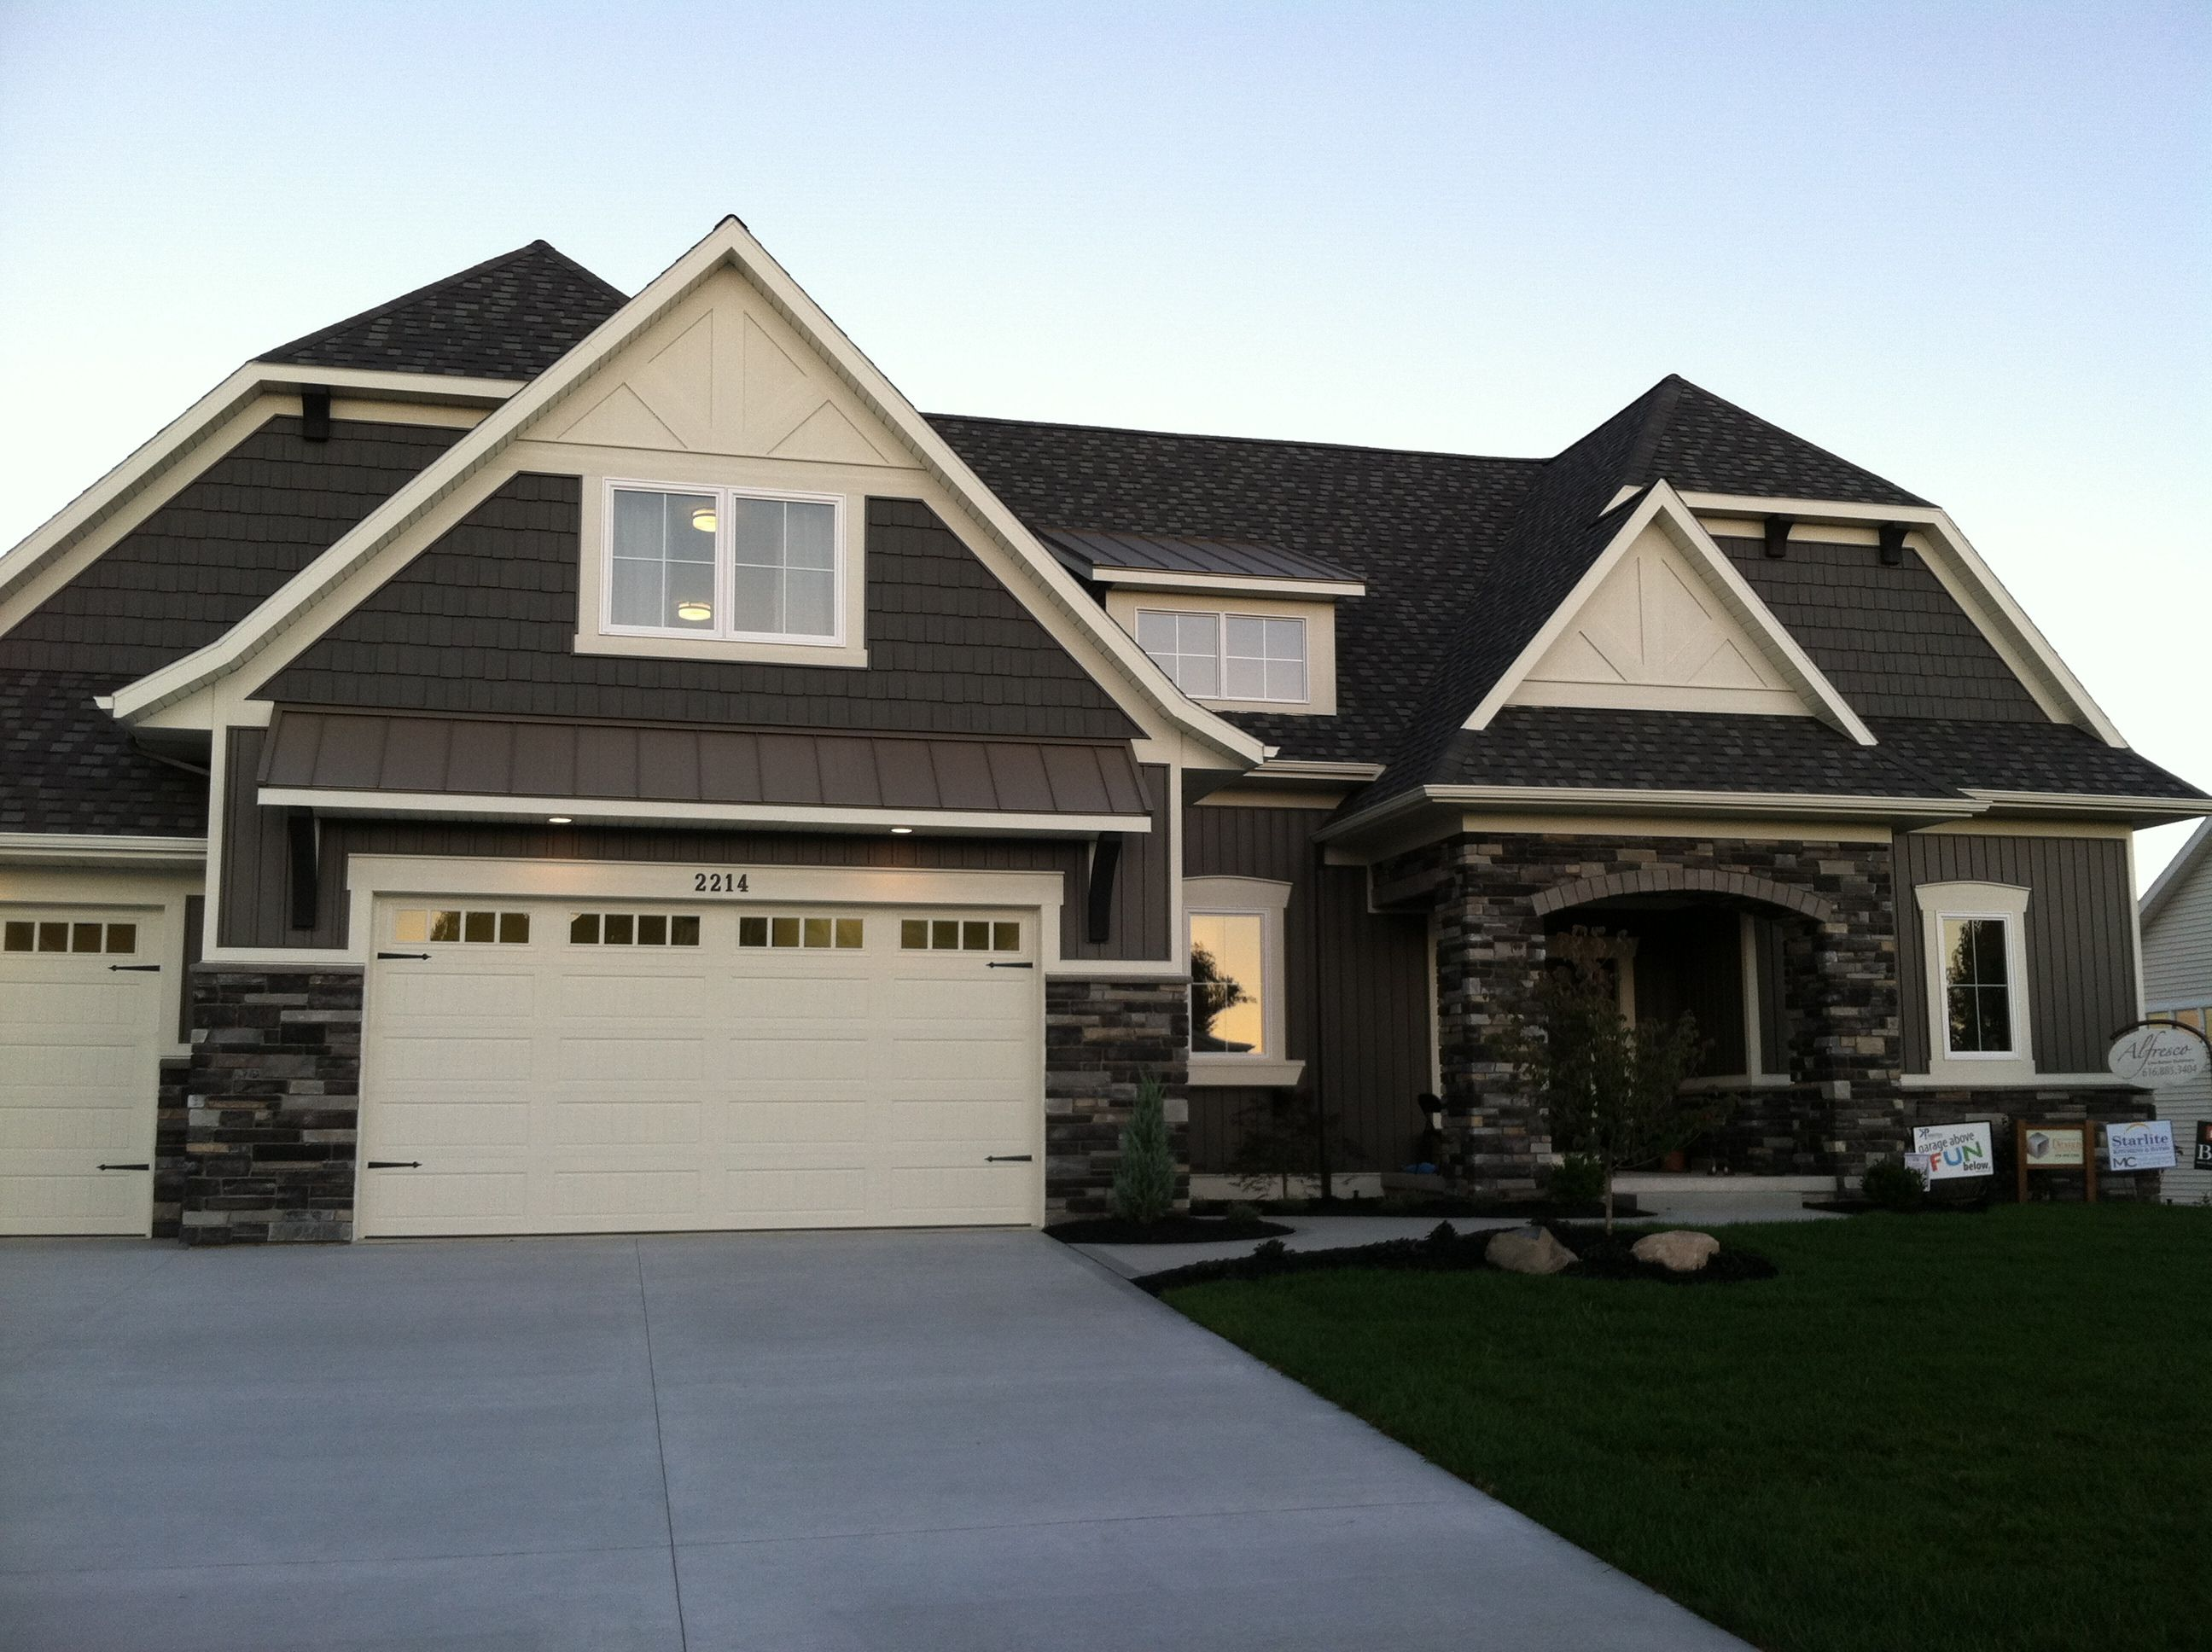 Awesome exterior home color schemes for House paint color exterior